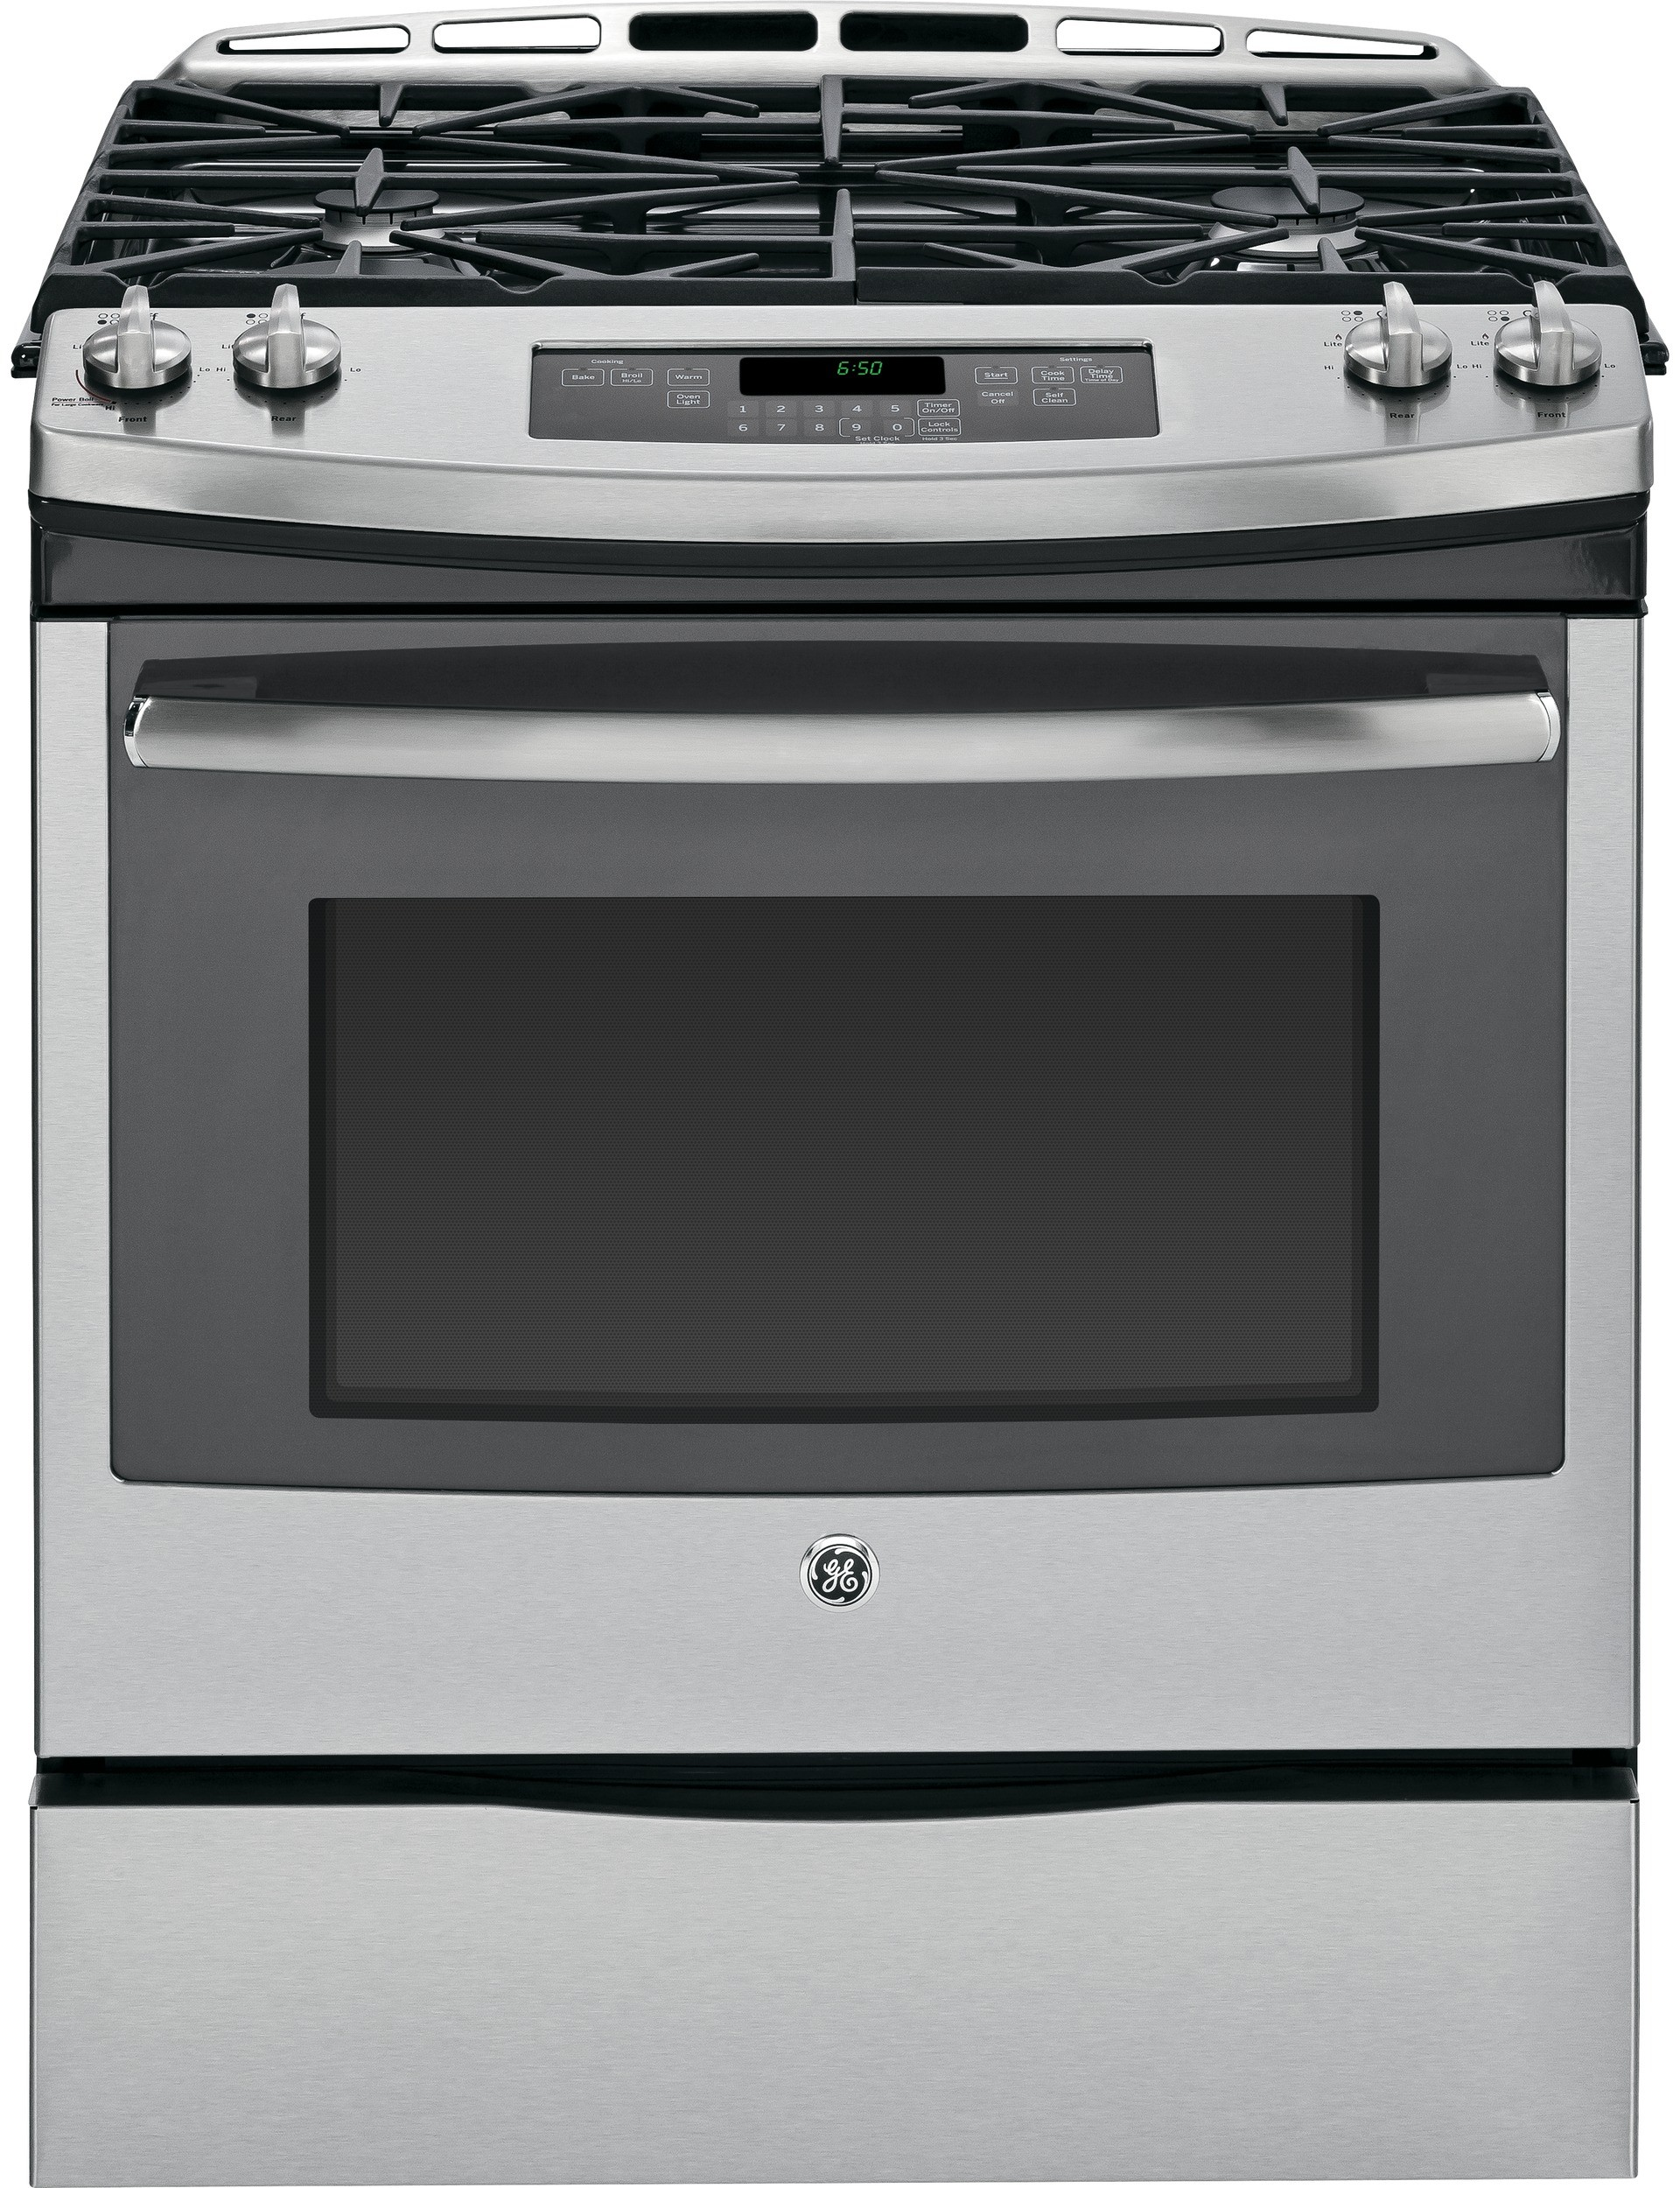 Countertop Warming Drawer Ge Jgs650sefss 30 Inch Slide In Gas Range With 5 6 Cu Ft